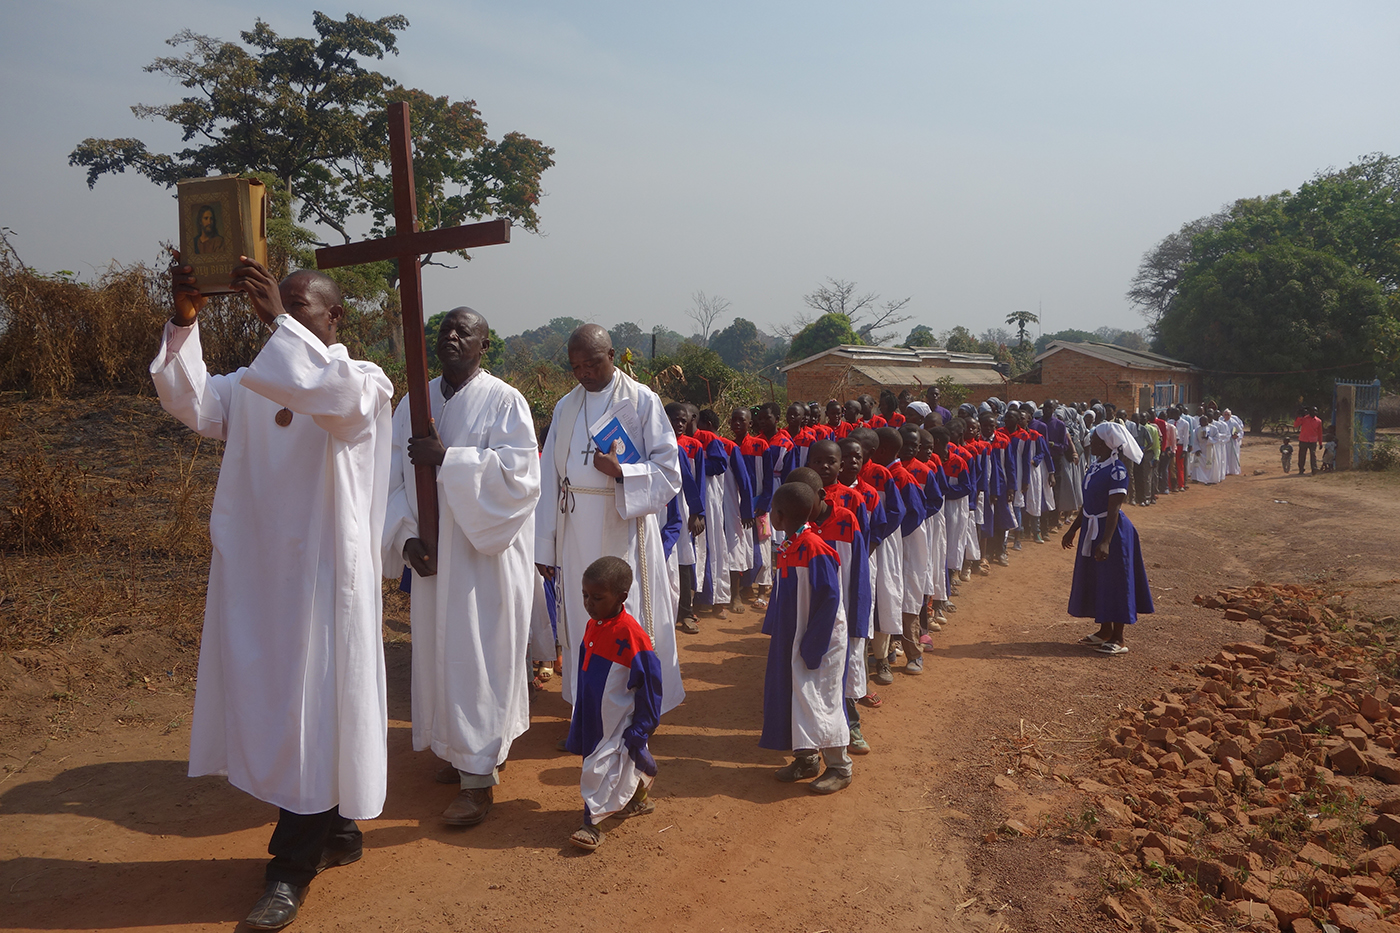 Procession of pastors and children's choir through Yambio, South Sudan